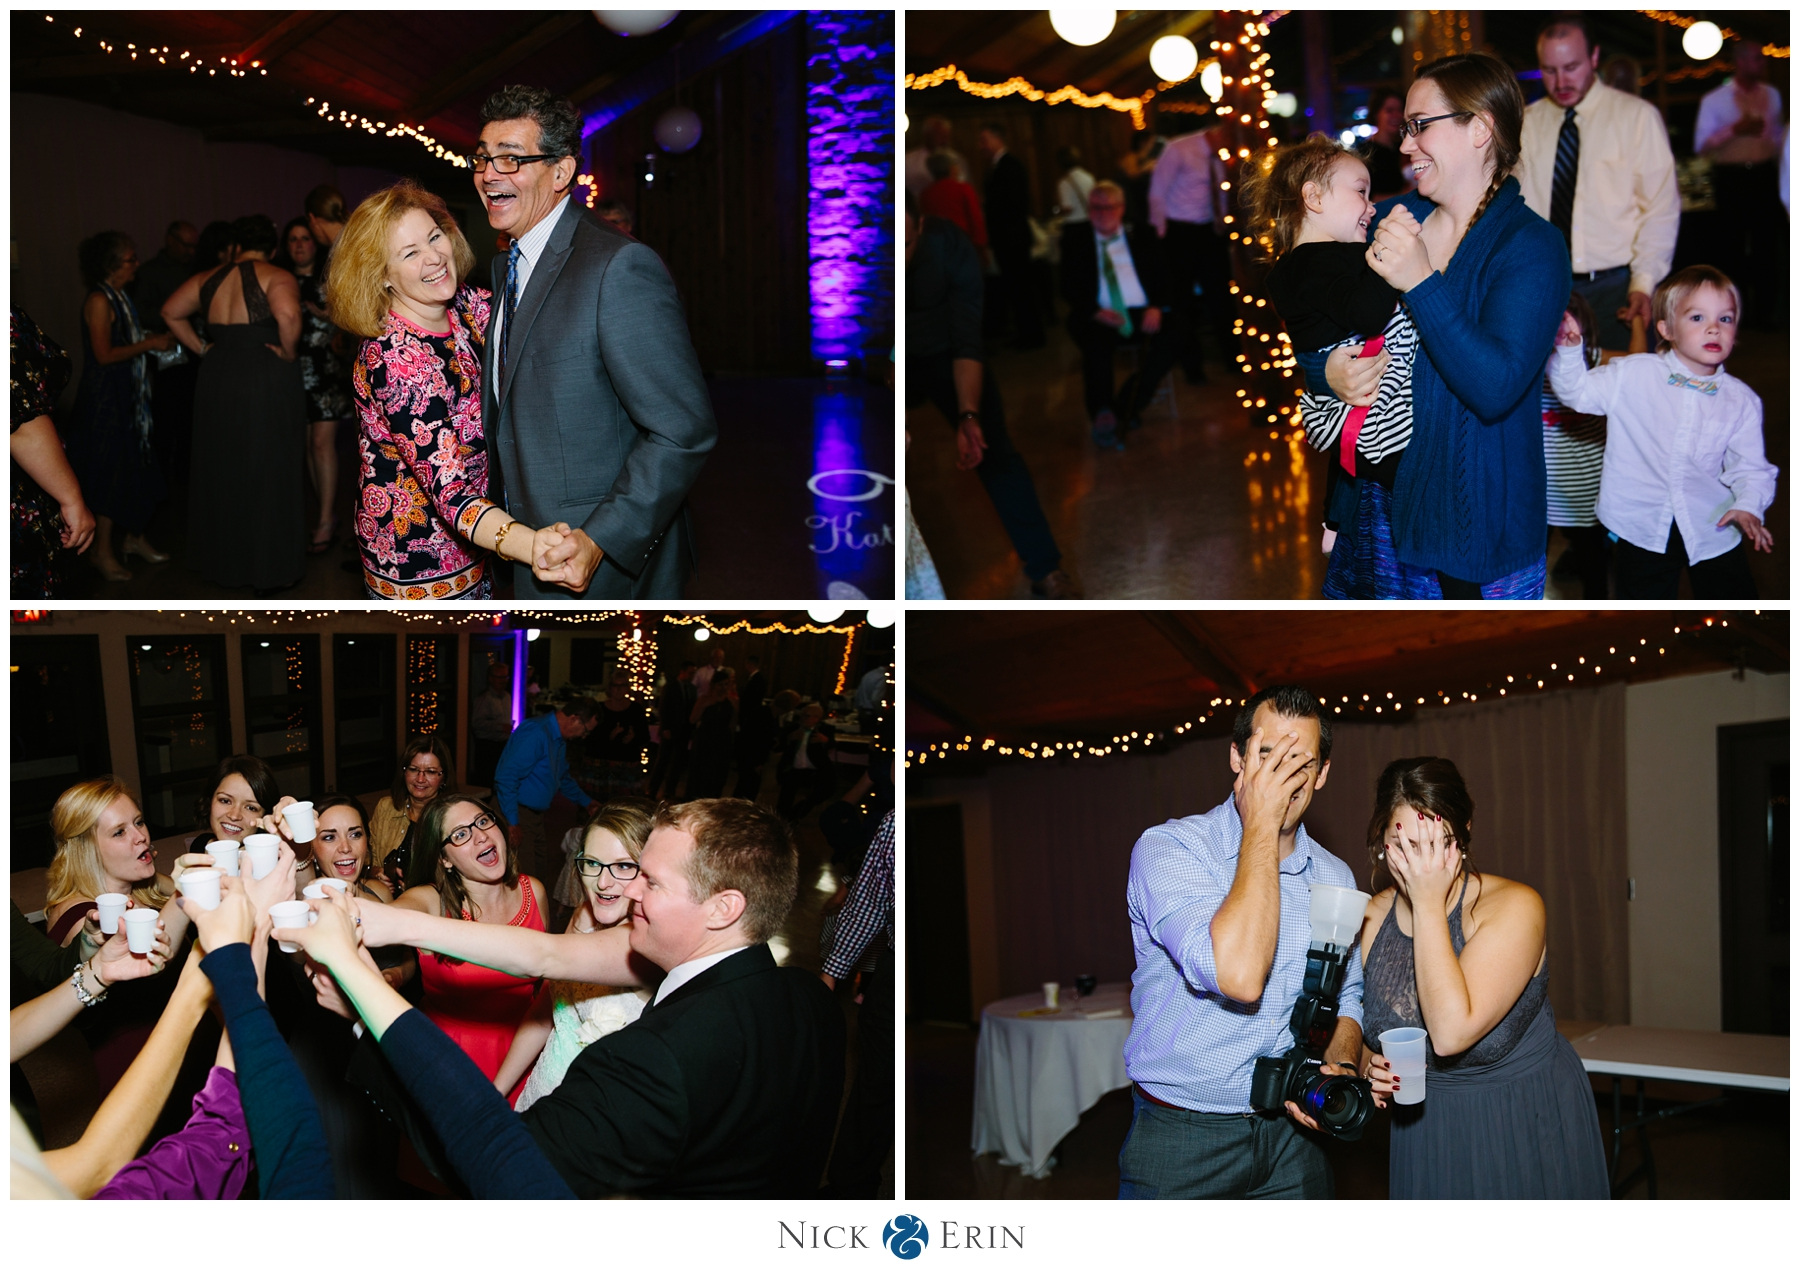 donner_photography_iowa-wedding_katie-chris_0060